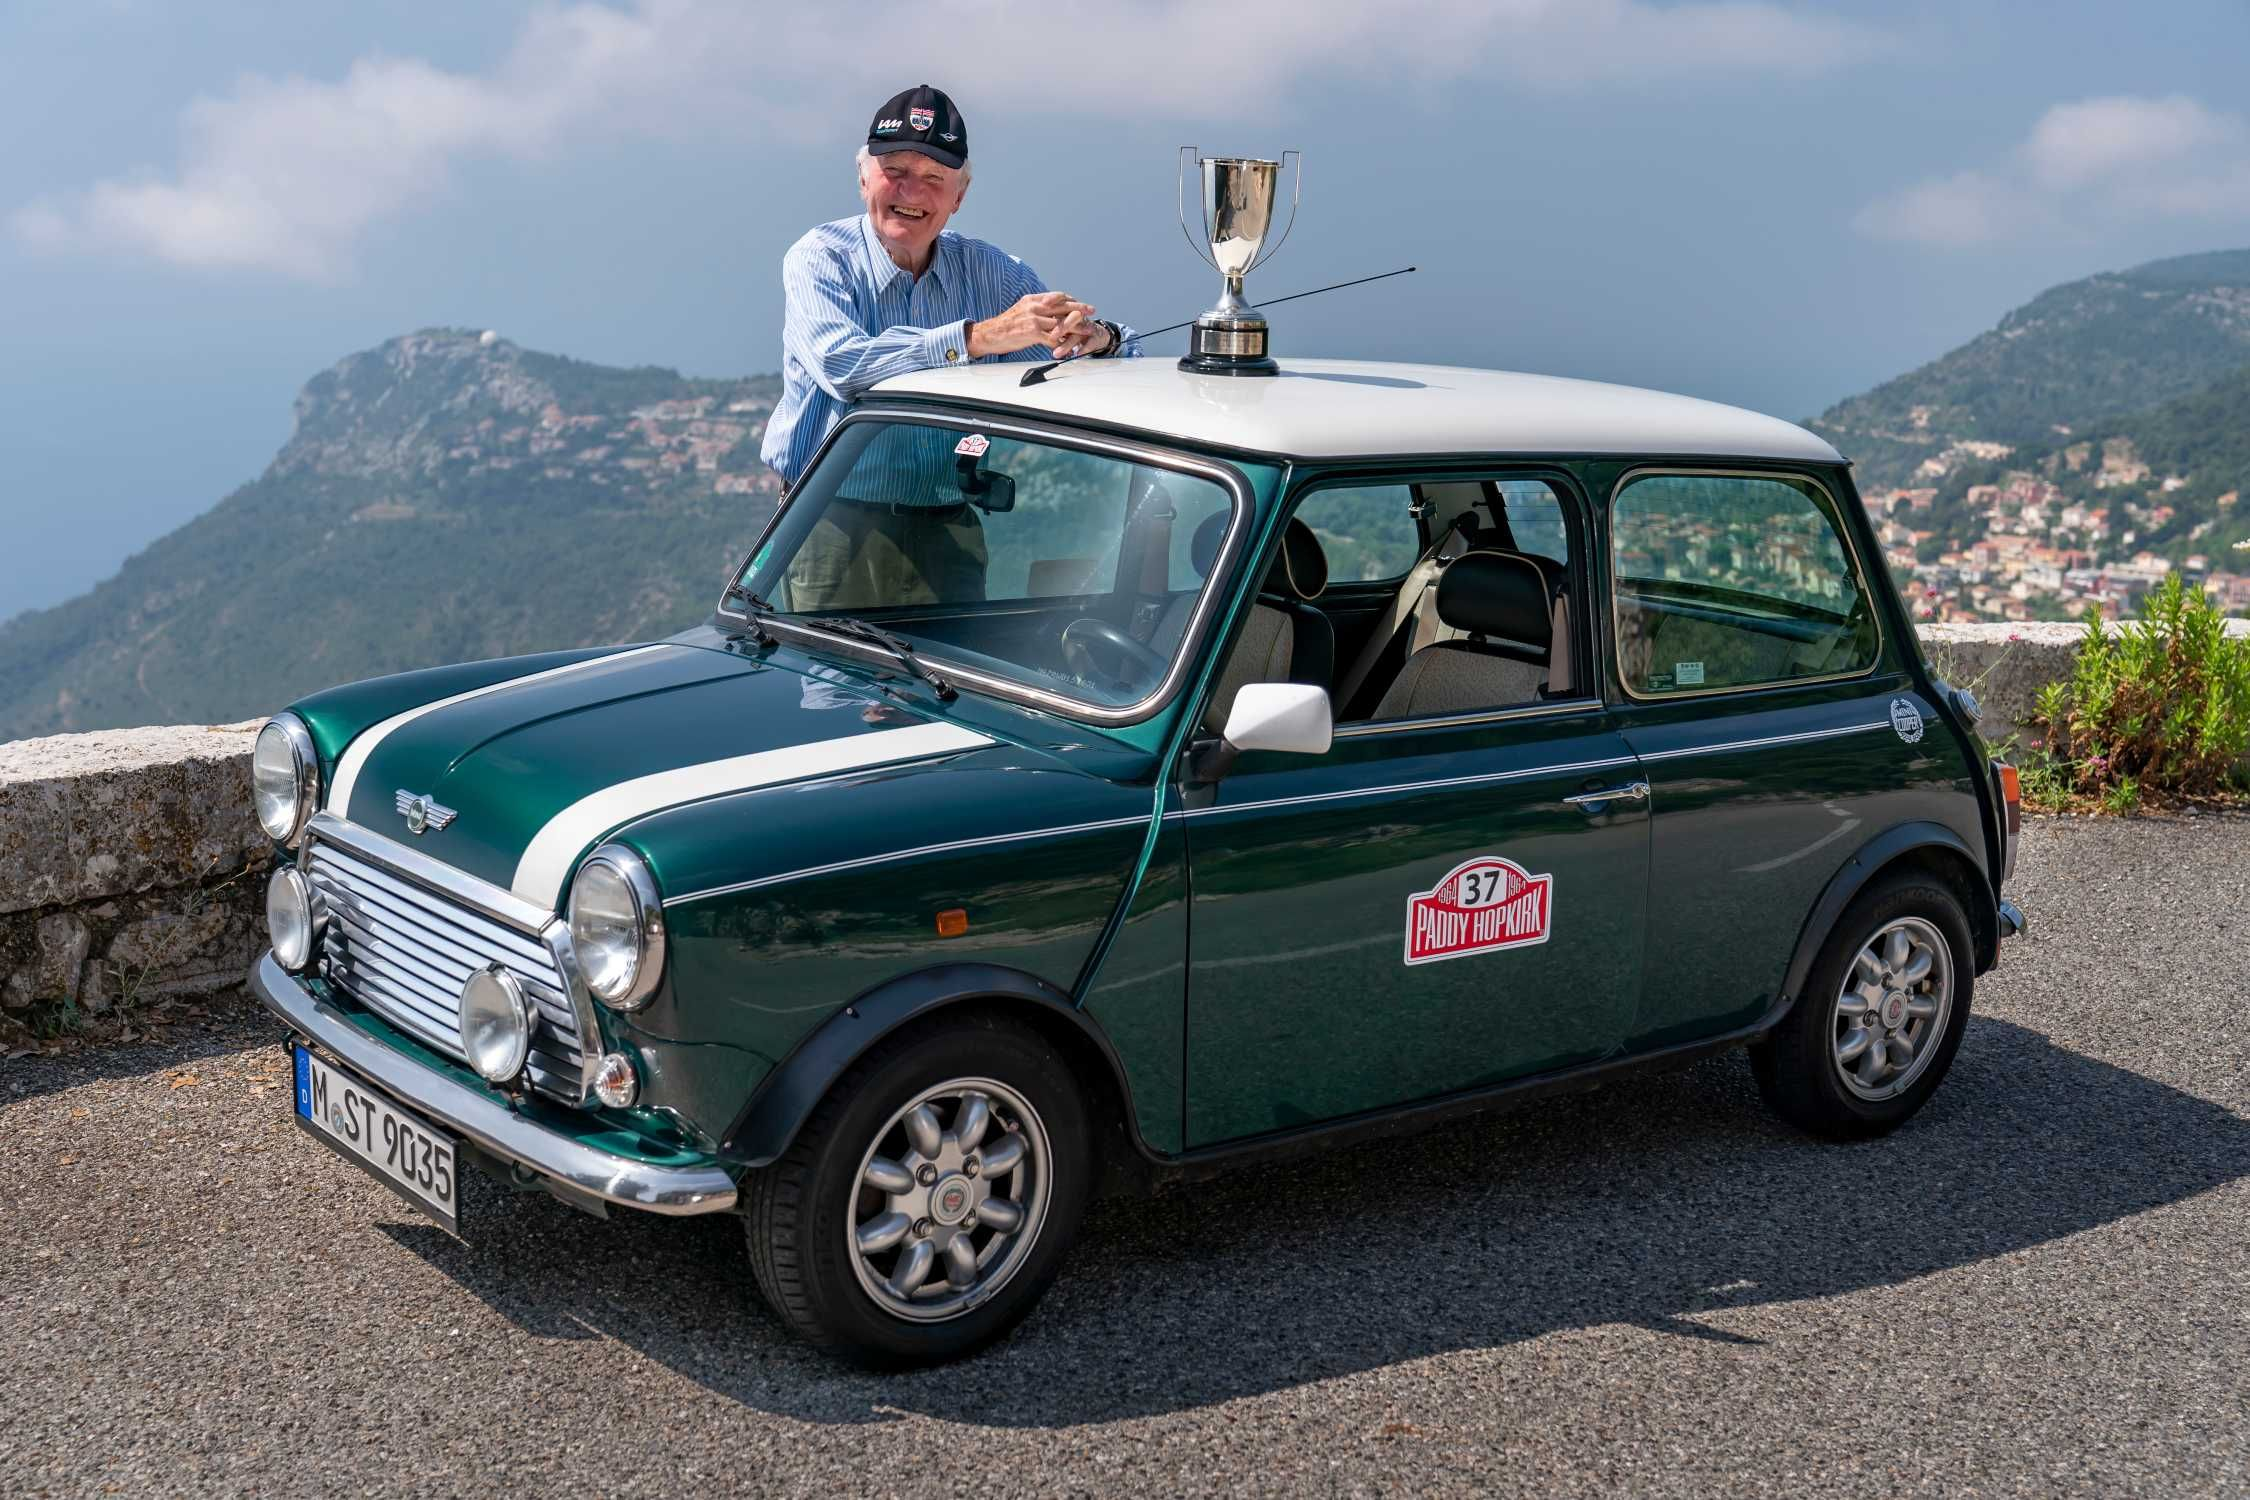 Paddy Hopkirk Gentleman legend in the classic Mini and